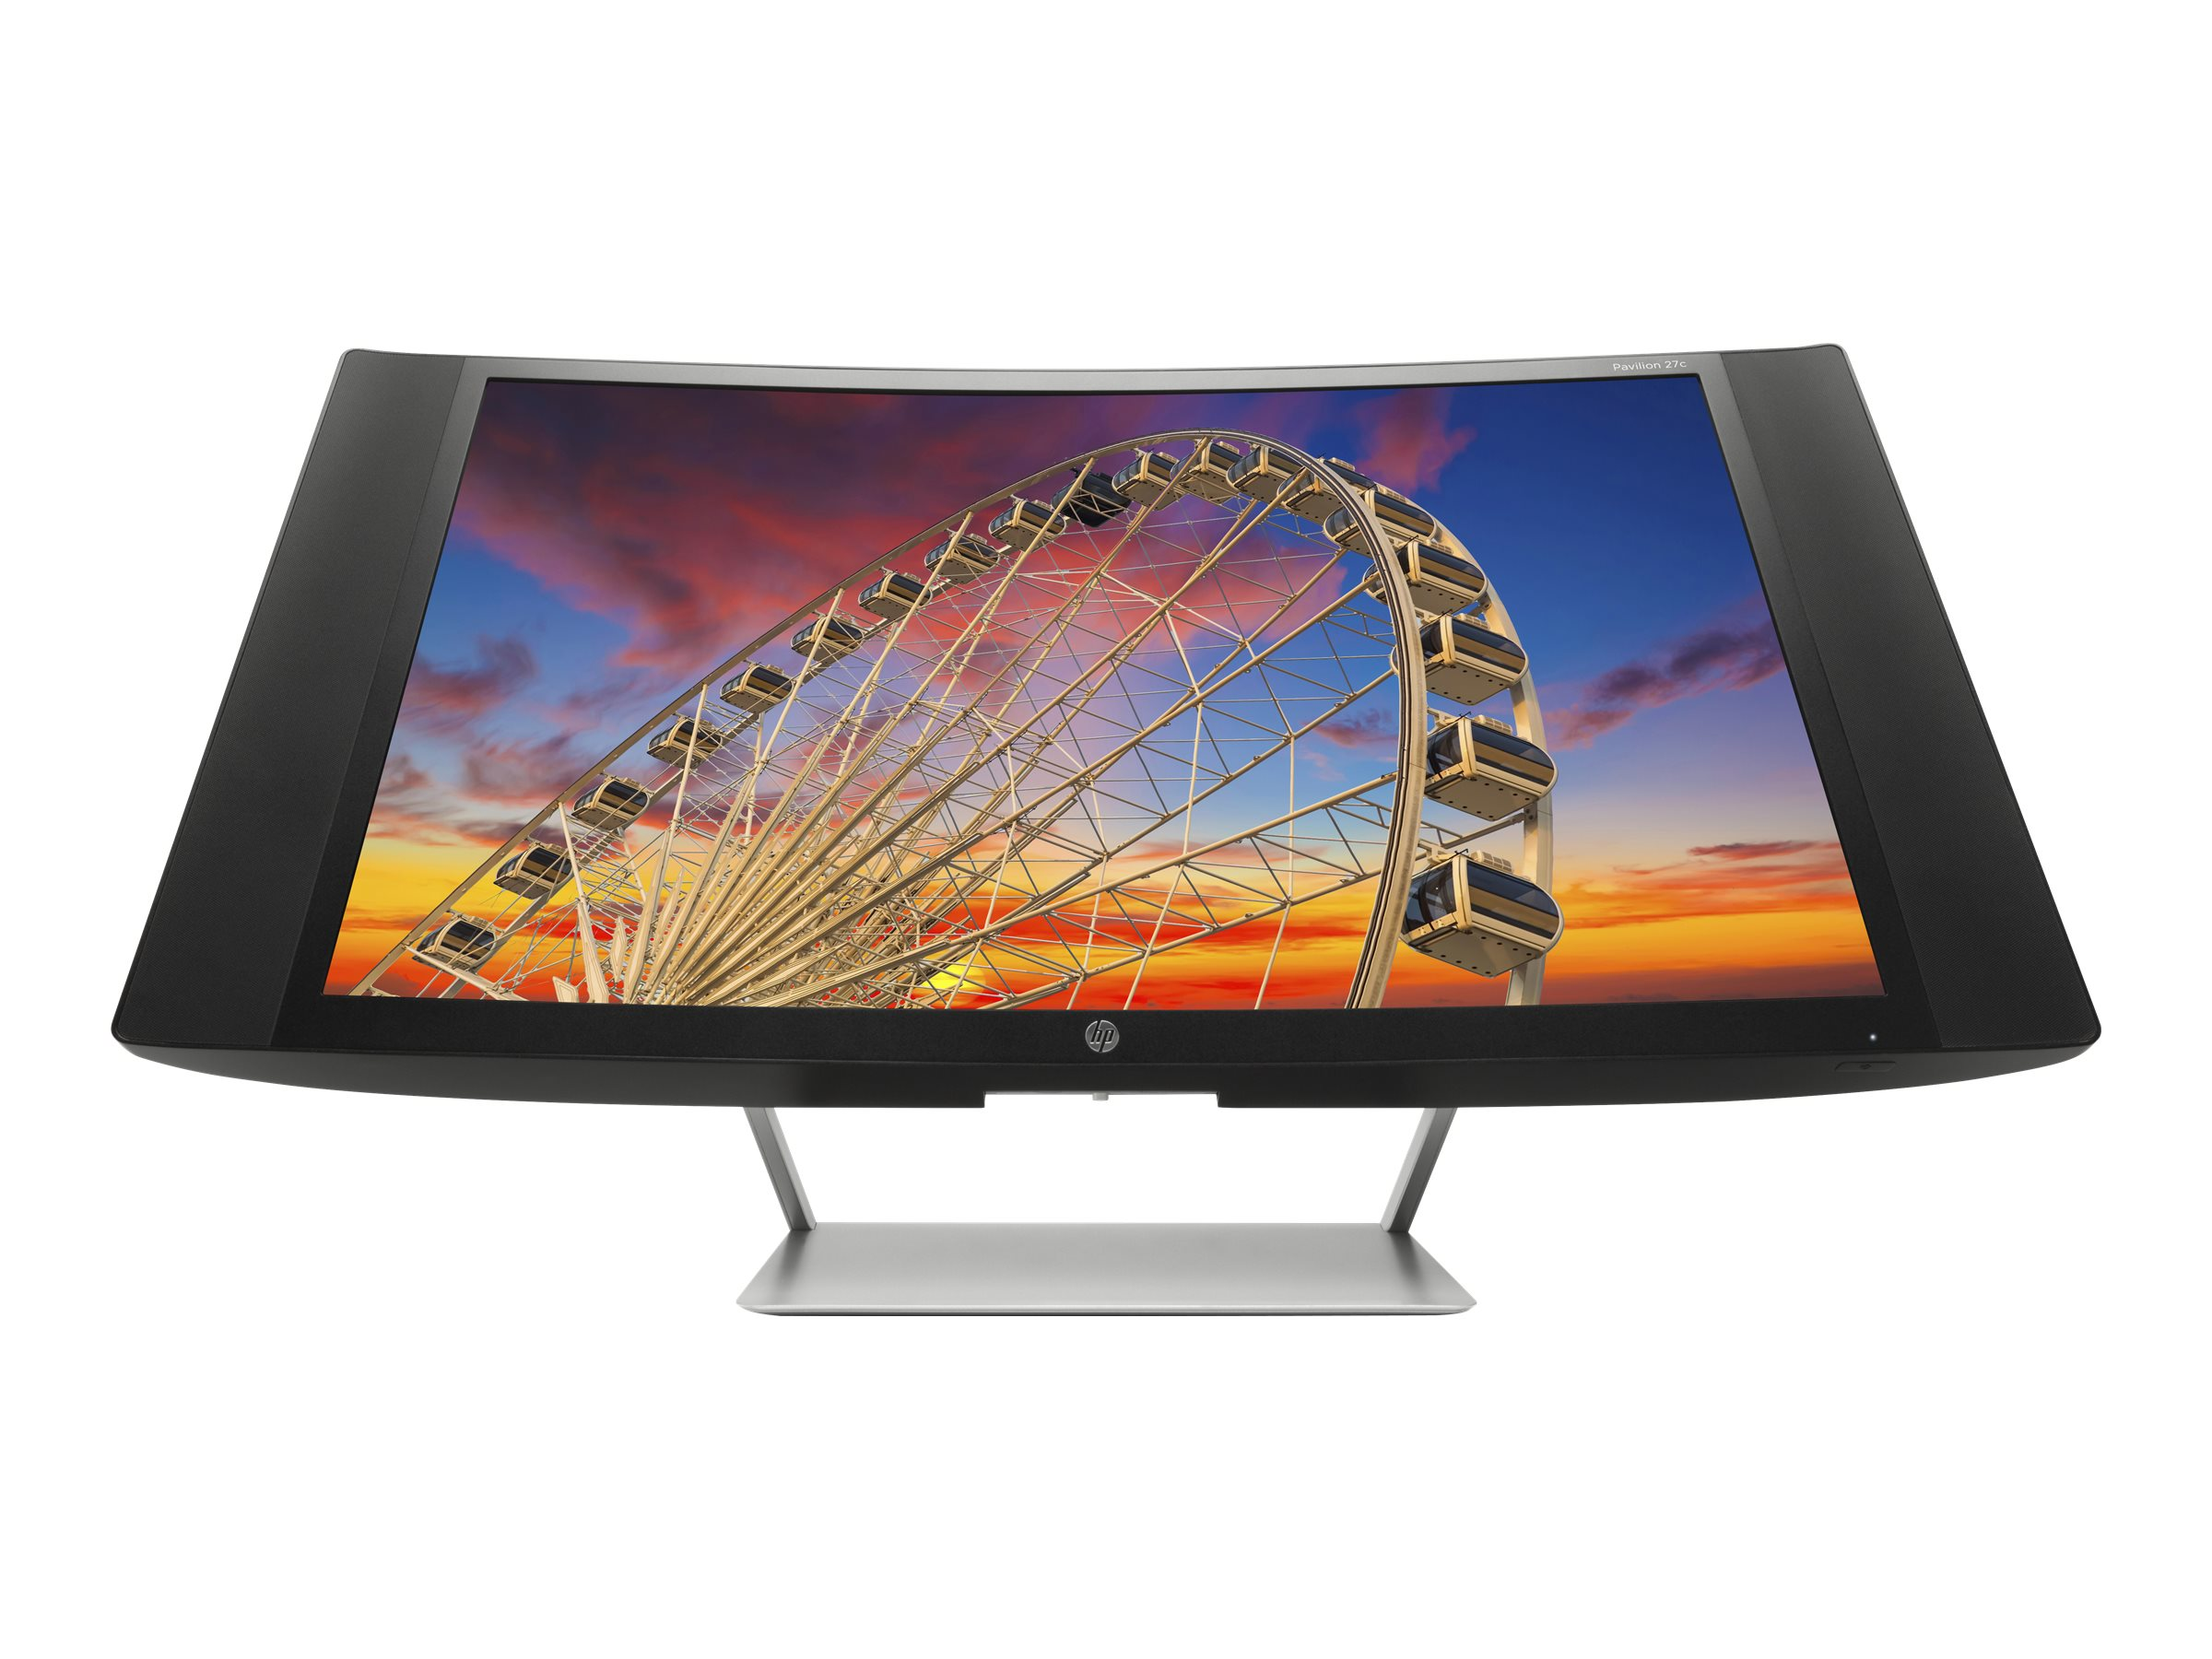 HP 27 Pavilion 27c Full HD LED-LCD Curved Display, Black, J9G67AA#ABA, 18239976, Monitors - LED-LCD